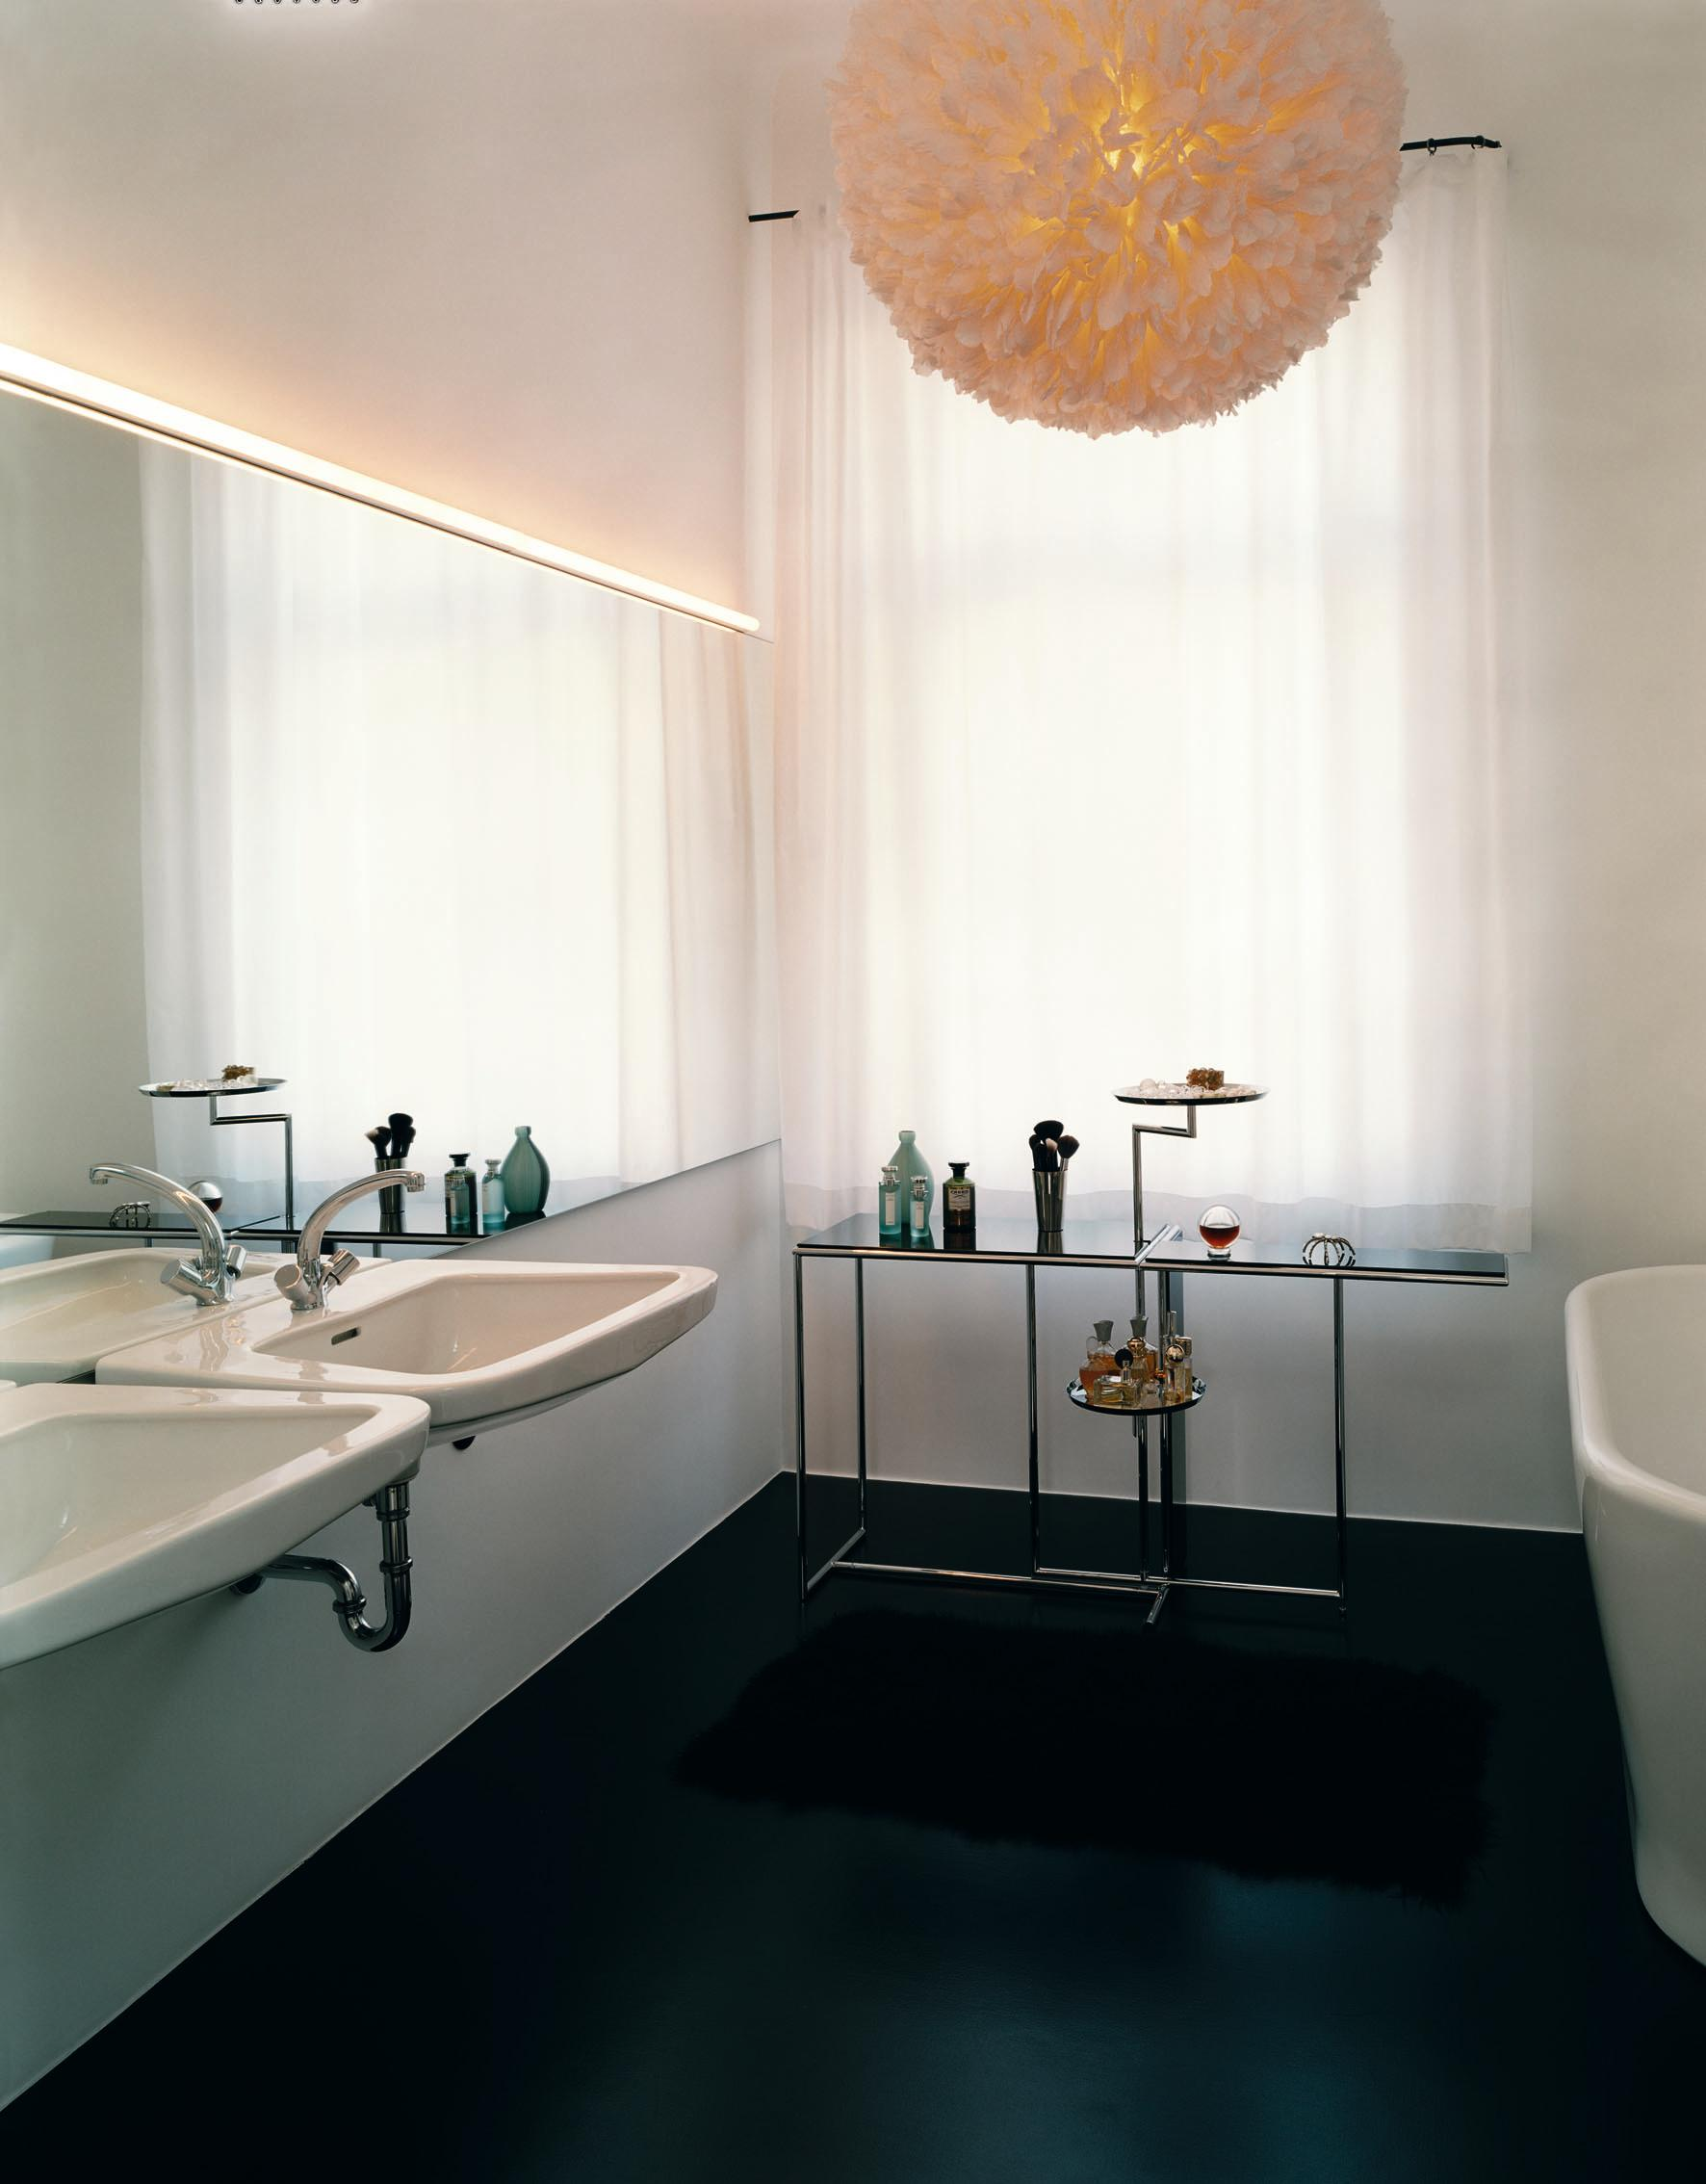 """Rivoli""-Teetisch und Kugelleuchte im Badezimmer #badezimmerspiegel ©ClassiCon, Authorised by The Worldwide Licence Holder Aram Designs Ltd., London, Designer: Eileen Gray"